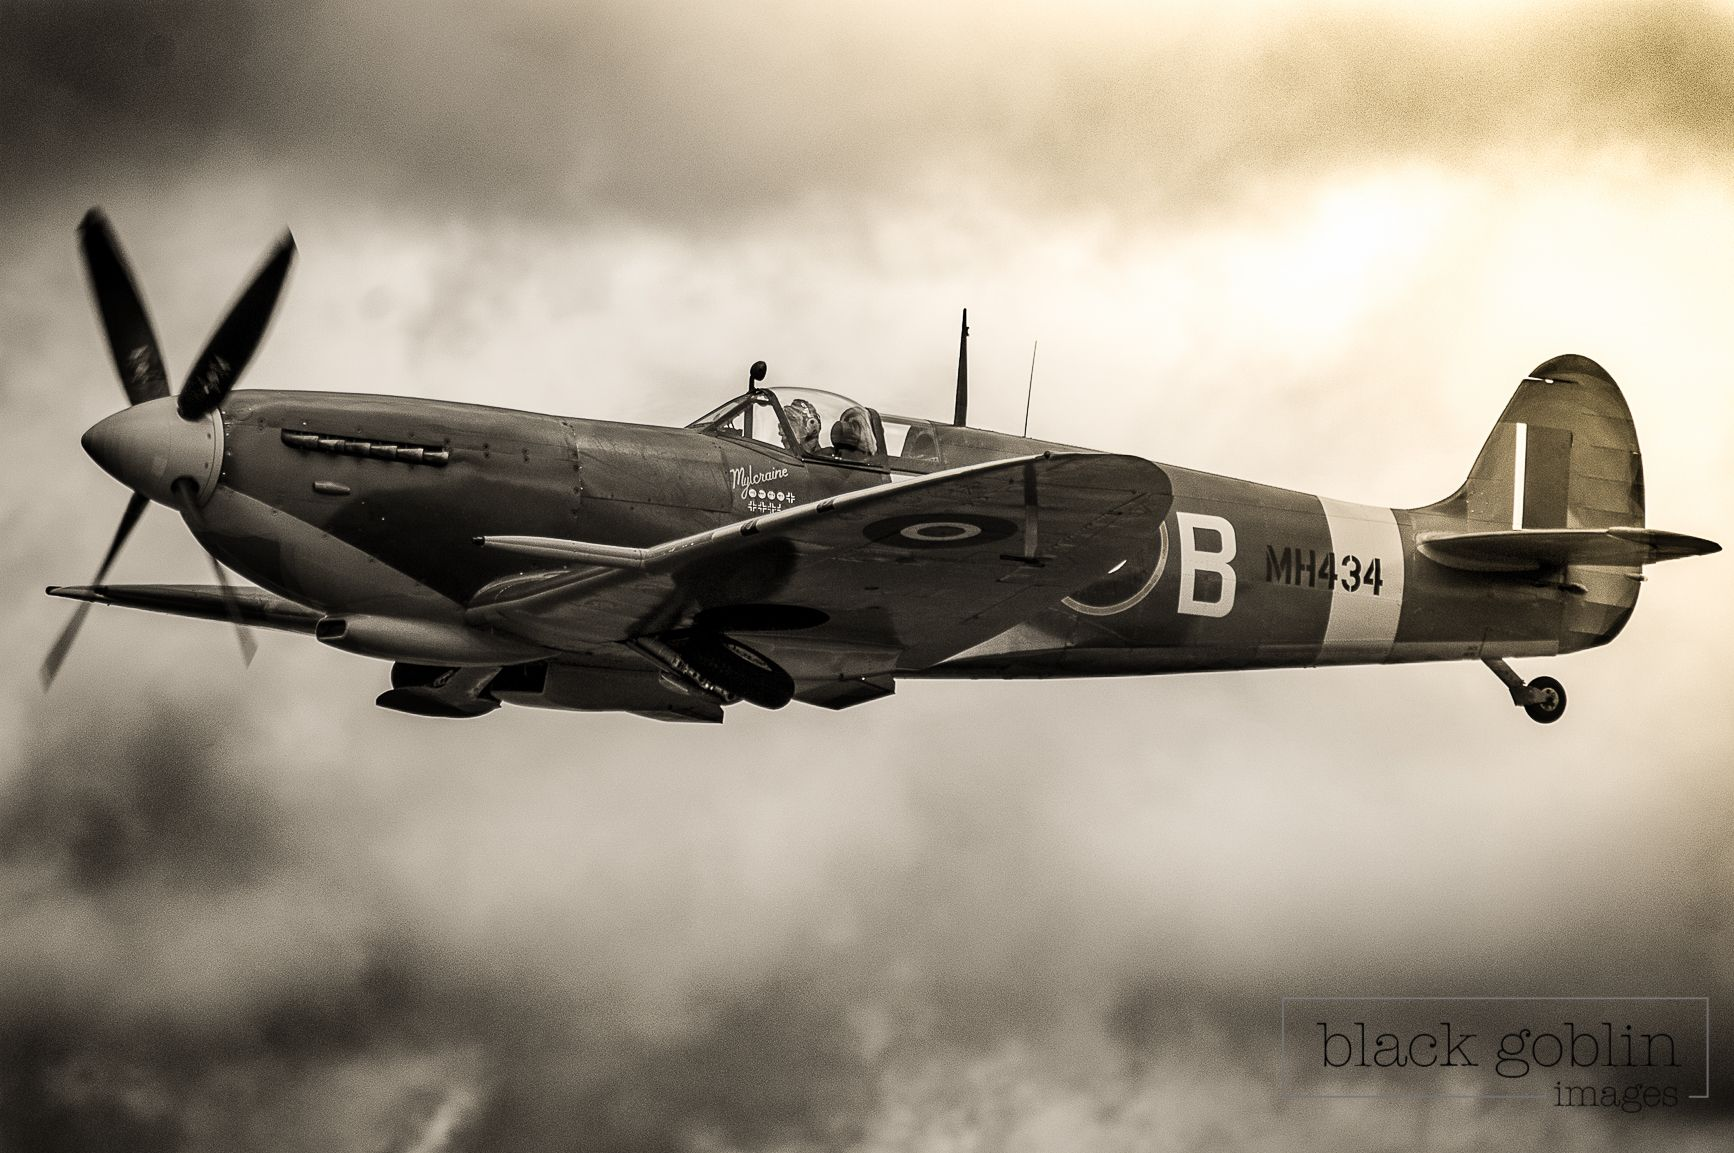 Spitfire flying at Fairford Airshow Air show, Image